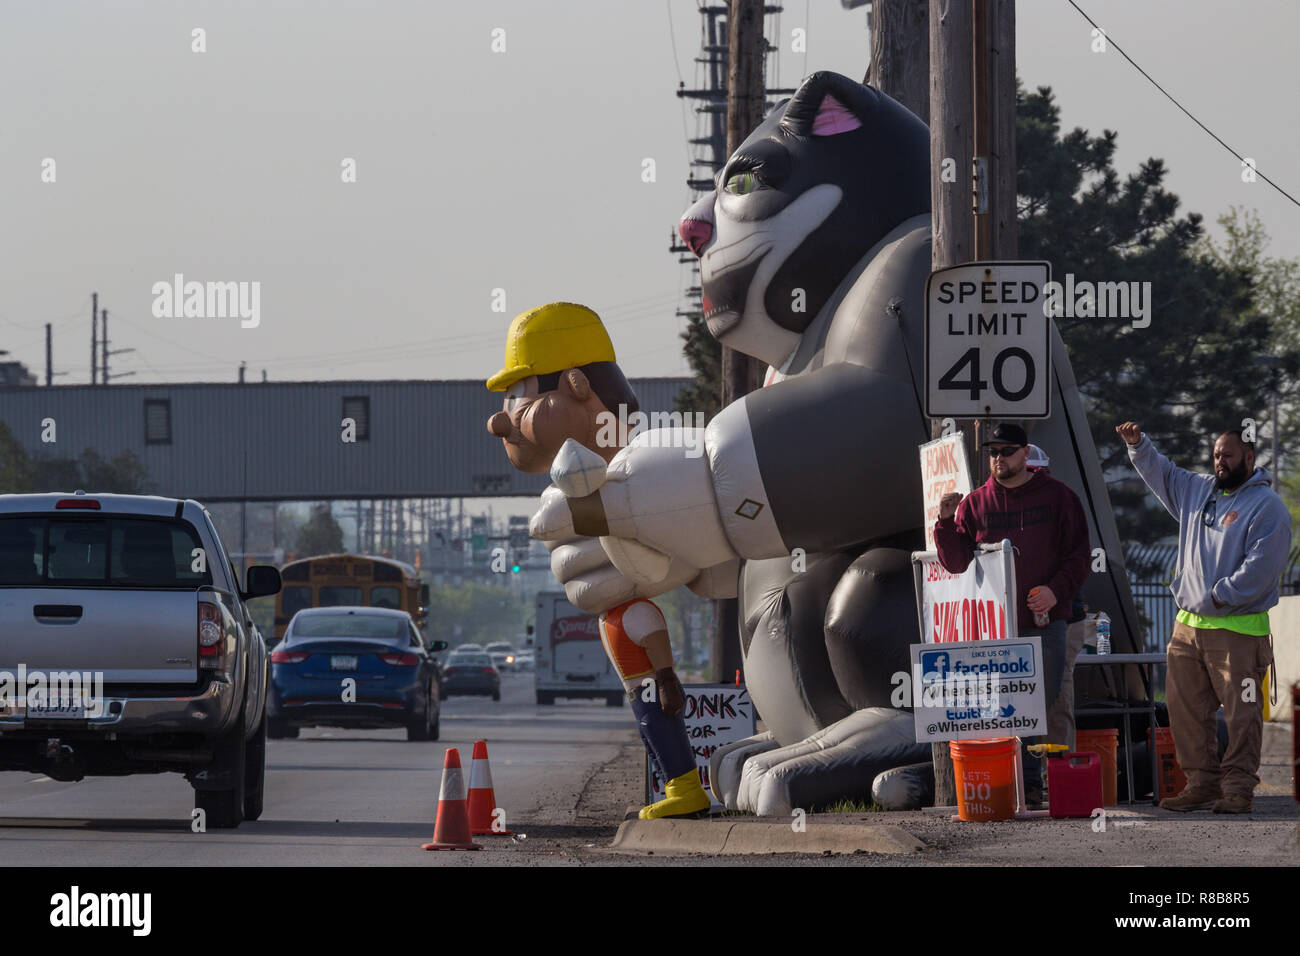 Union picketers demonstrating near entrance to Cargill facility in Hammond, Indiana Stock Photo